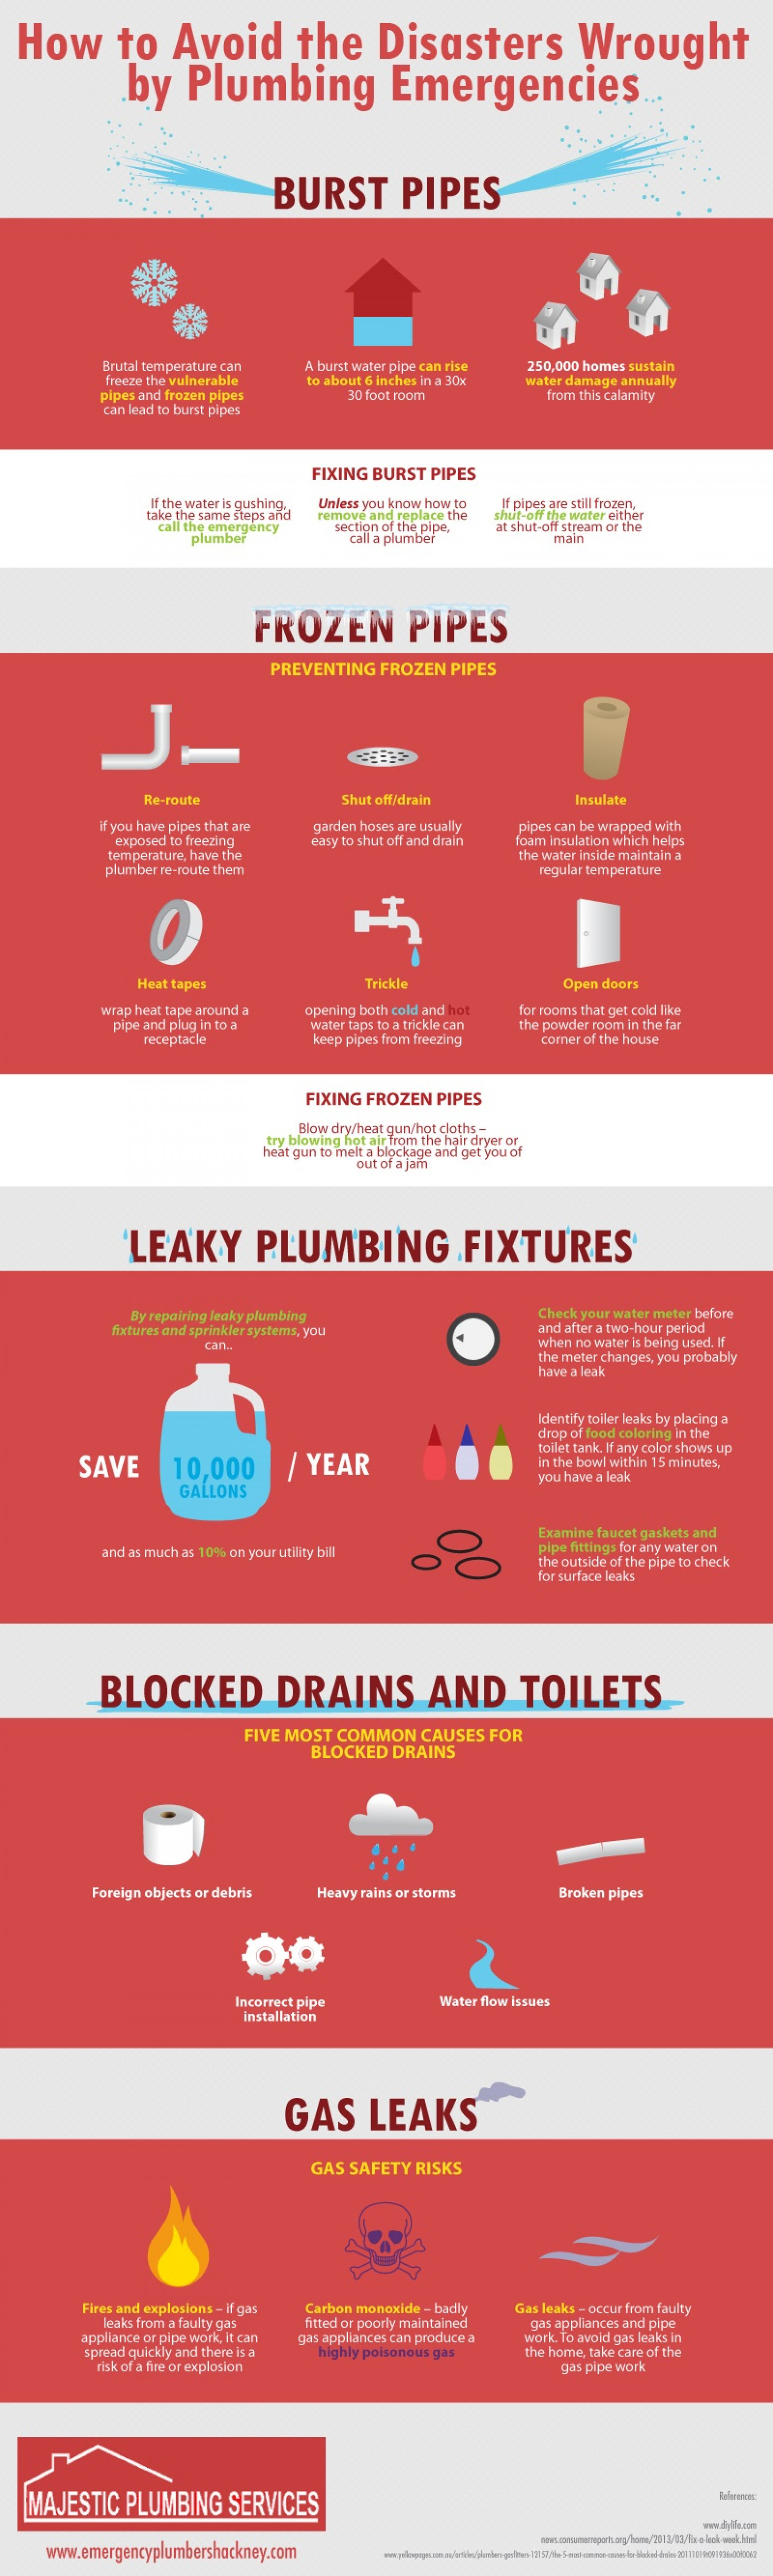 How To Avoid The Disasters Wrought By Plumbing Emergencies Infographic